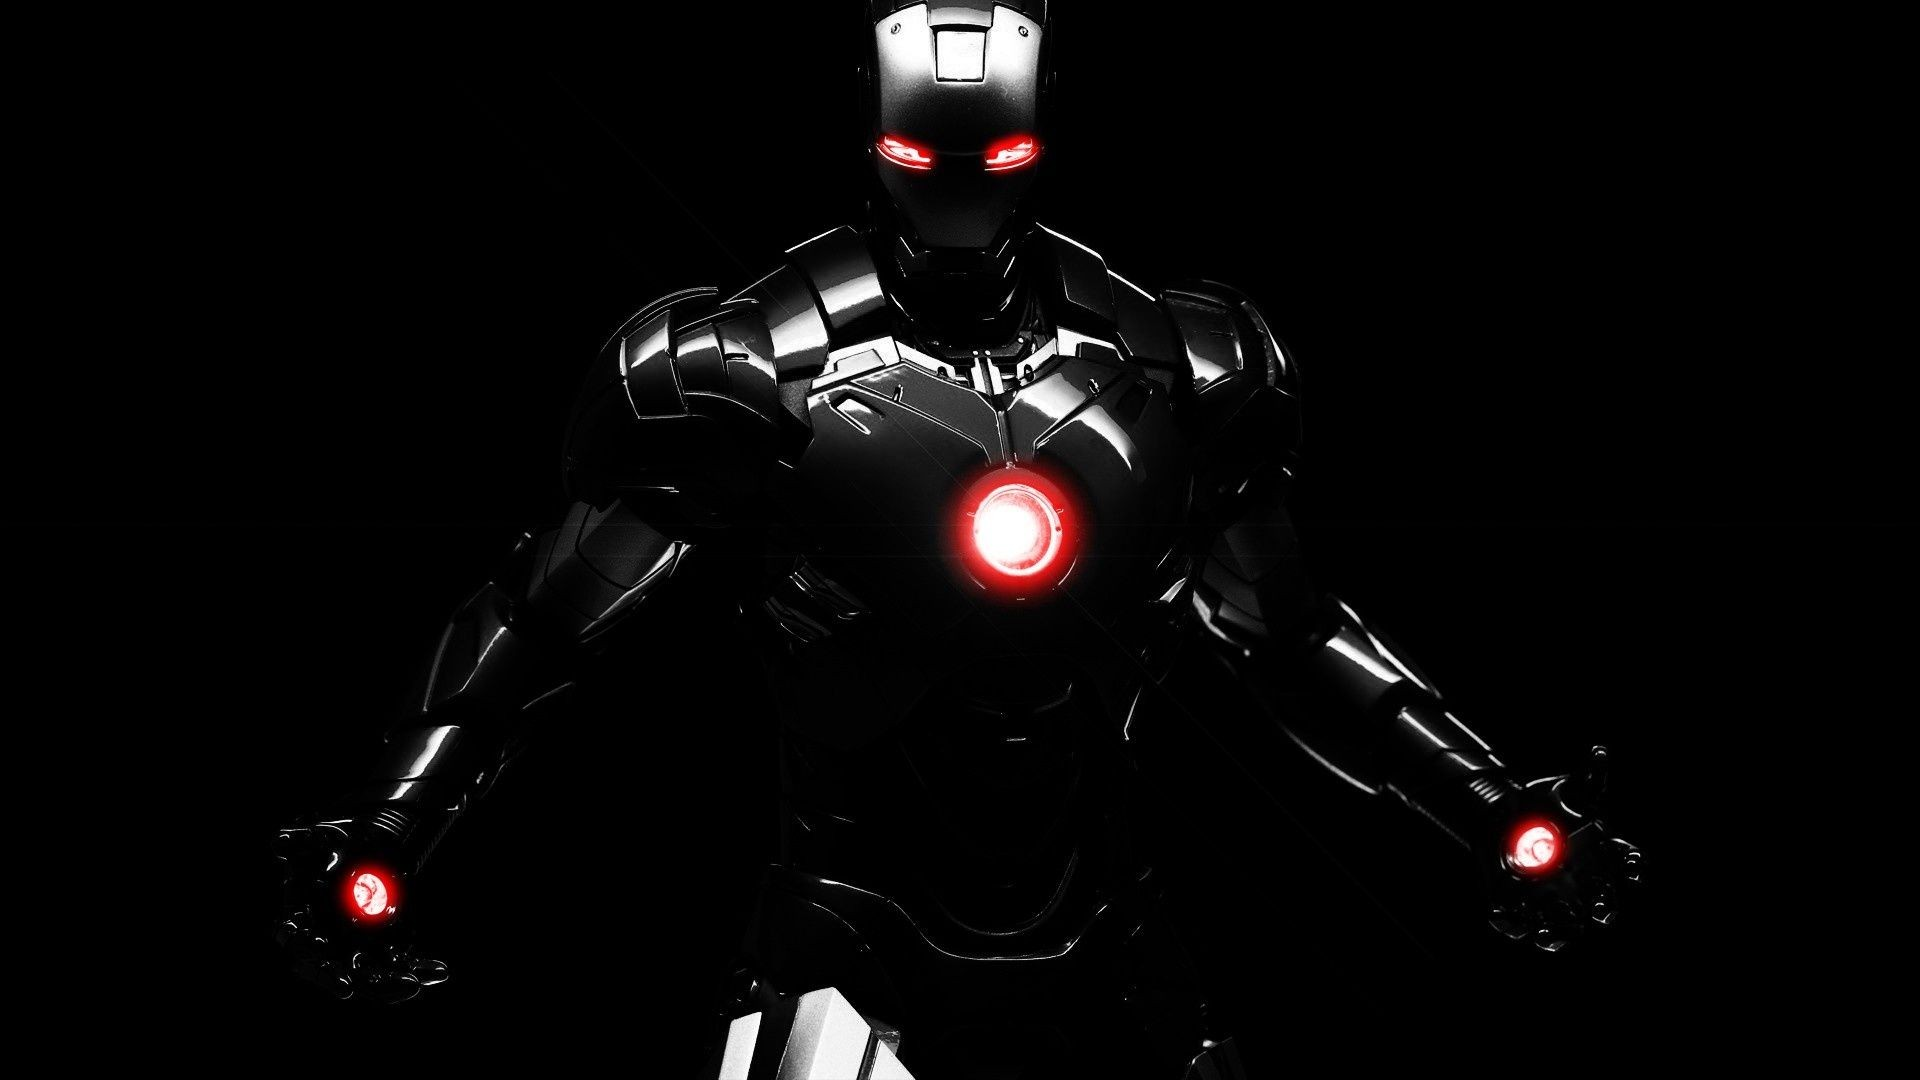 Iron man dark wallpaper